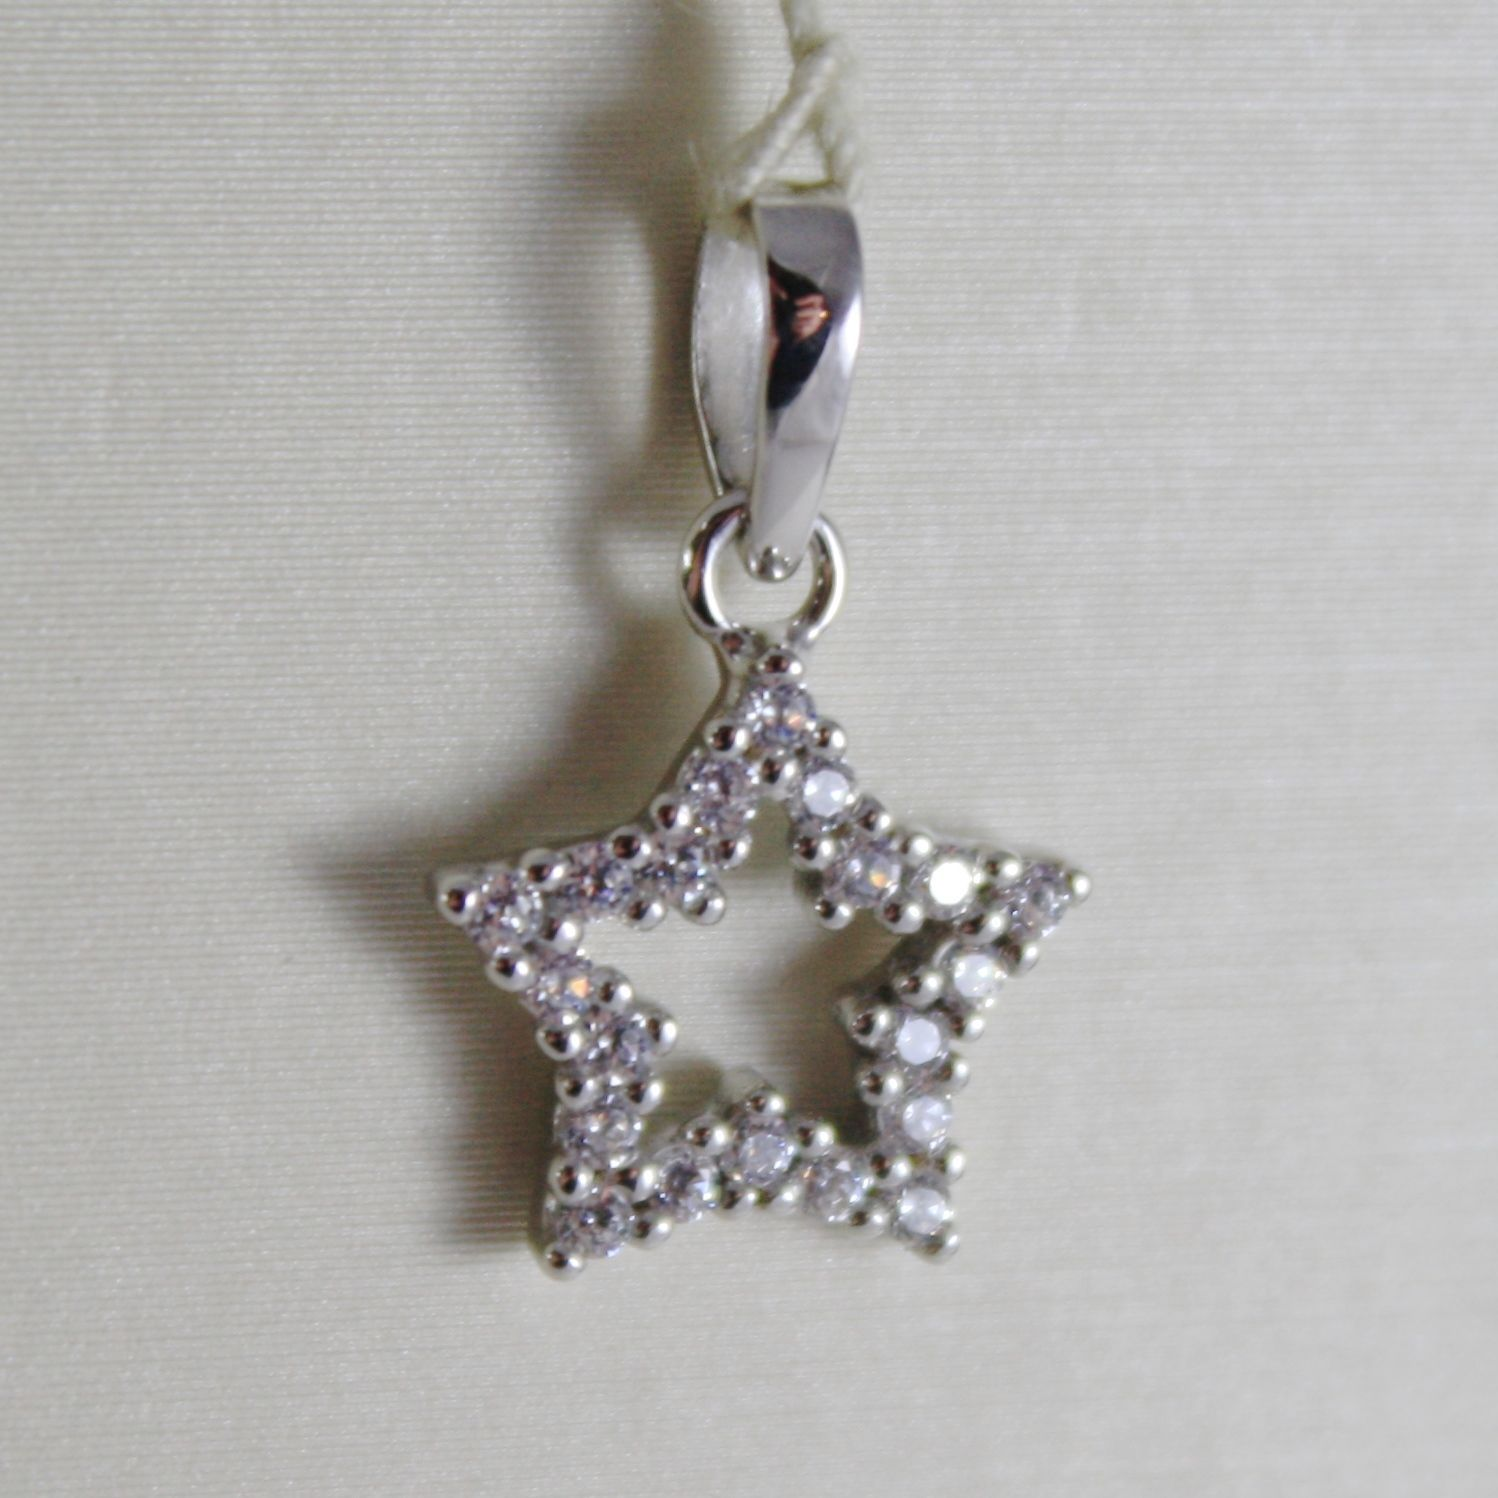 18K WHITE GOLD MINI STAR PENDANT, LENGTH 0.63 INCHES, ZIRCONIA, MADE IN ITALY